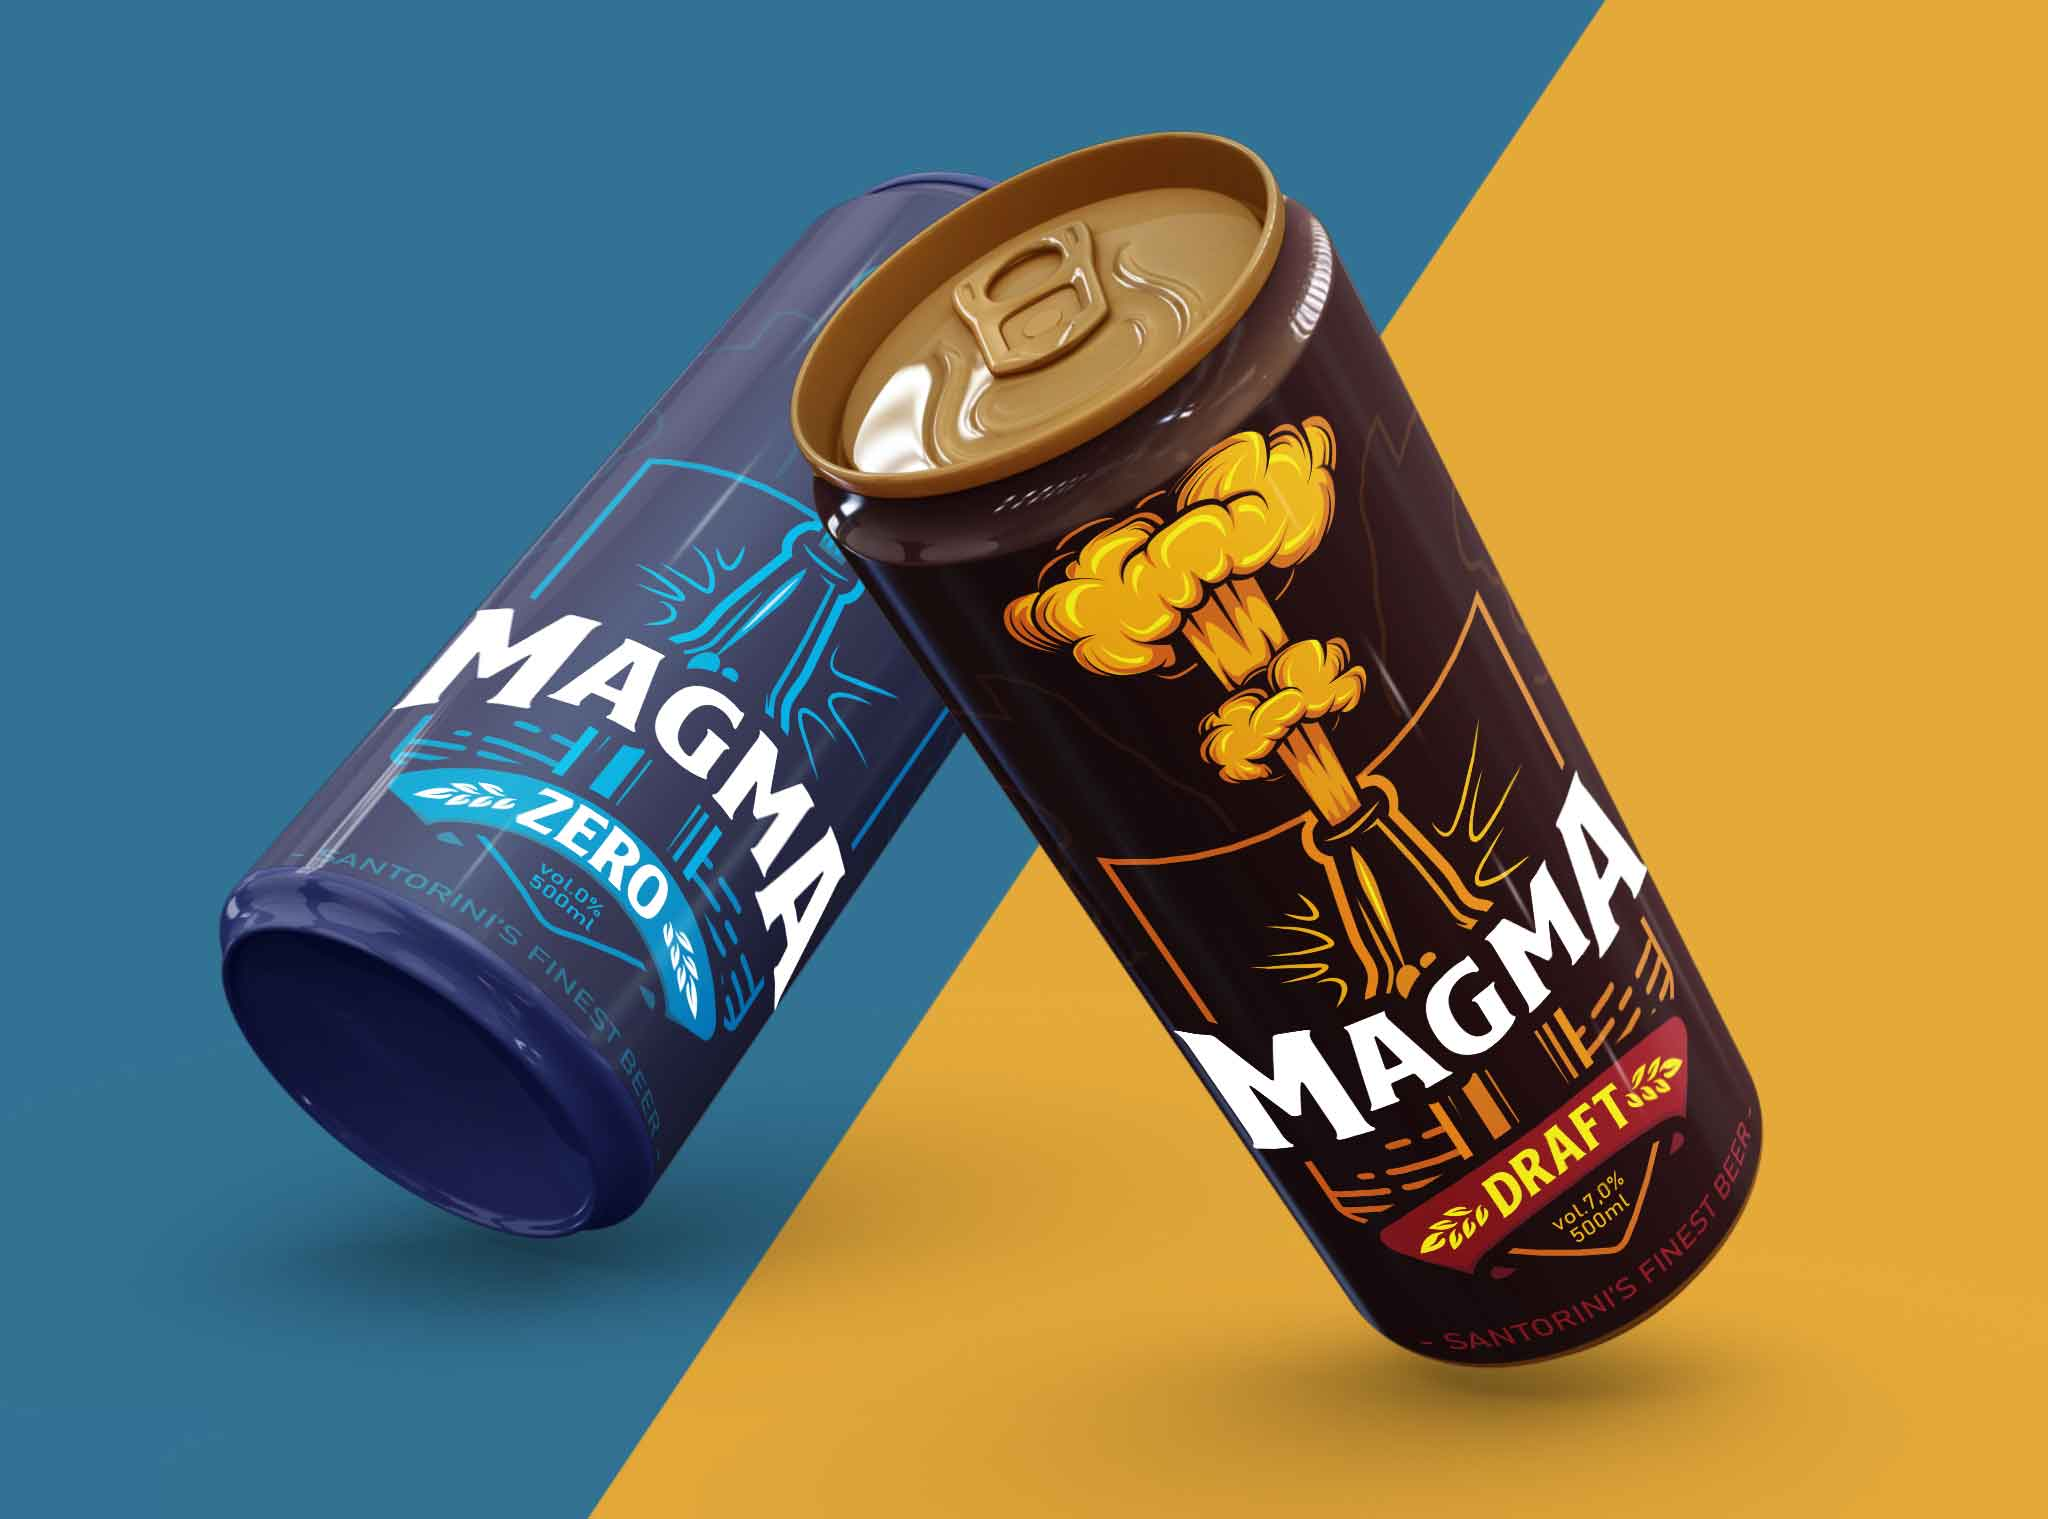 Magma Beer in a Can